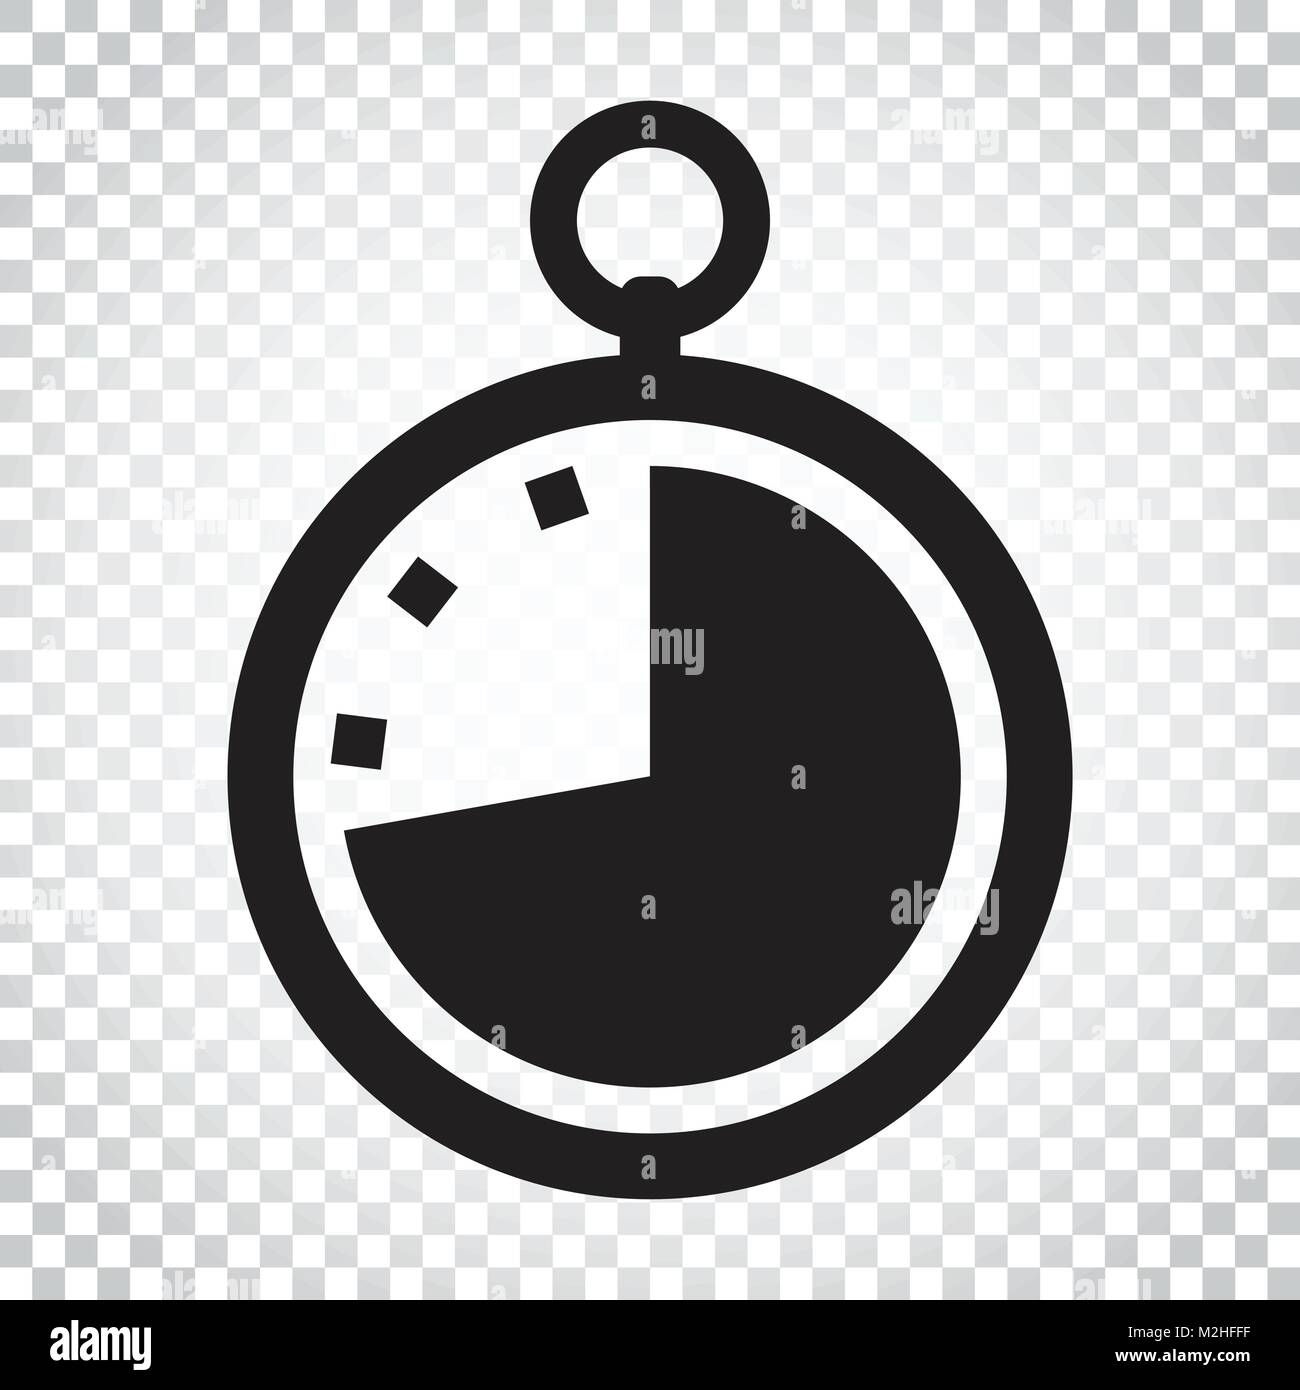 Timer icon illustration  Flat vector clock pictogram  Simple